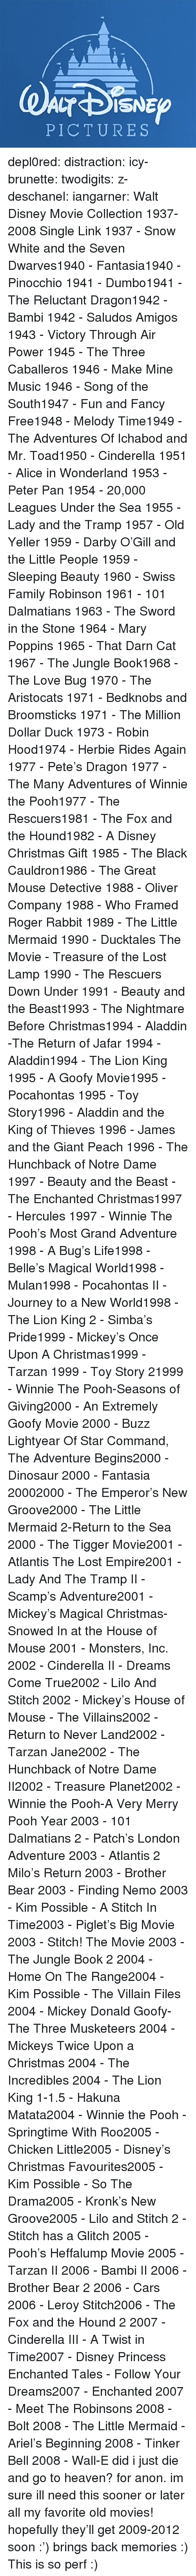 New Groove: PICTURES depl0red:  distraction:   icy-brunette:   twodigits:   z-deschanel:   iangarner:   Walt Disney Movie Collection 1937-2008 Single Link      1937 - Snow White and the Seven Dwarves1940 - Fantasia1940 - Pinocchio 1941 - Dumbo1941 - The Reluctant Dragon1942 - Bambi 1942 - Saludos Amigos 1943 - Victory Through Air Power 1945 - The Three Caballeros 1946 - Make Mine Music 1946 - Song of the South1947 - Fun and Fancy Free1948 - Melody Time1949 - The Adventures Of Ichabod and Mr. Toad1950 - Cinderella 1951 - Alice in Wonderland 1953 - Peter Pan 1954 - 20,000 Leagues Under the Sea 1955 - Lady and the Tramp 1957 - Old Yeller 1959 - Darby O'Gill and the Little People 1959 - Sleeping Beauty 1960 - Swiss Family Robinson 1961 - 101 Dalmatians 1963 - The Sword in the Stone 1964 - Mary Poppins 1965 - That Darn Cat 1967 - The Jungle Book1968 - The Love Bug 1970 - The Aristocats 1971 - Bedknobs and Broomsticks 1971 - The Million Dollar Duck 1973 - Robin Hood1974 - Herbie Rides Again 1977 - Pete's Dragon 1977 - The Many Adventures of Winnie the Pooh1977 - The Rescuers1981 - The Fox and the Hound1982 - A Disney Christmas Gift 1985 - The Black Cauldron1986 - The Great Mouse Detective 1988 - Oliver  Company 1988 - Who Framed Roger Rabbit 1989 - The Little Mermaid 1990 - Ducktales The Movie - Treasure of the Lost Lamp 1990 - The Rescuers Down Under 1991 - Beauty and the Beast1993 - The Nightmare Before Christmas1994 - Aladdin -The Return of Jafar 1994 - Aladdin1994 - The Lion King 1995 - A Goofy Movie1995 - Pocahontas 1995 - Toy Story1996 - Aladdin and the King of Thieves 1996 - James and the Giant Peach 1996 - The Hunchback of Notre Dame 1997 - Beauty and the Beast - The Enchanted Christmas1997 - Hercules 1997 - Winnie The Pooh's Most Grand Adventure 1998 - A Bug's Life1998 - Belle's Magical World1998 - Mulan1998 - Pocahontas II - Journey to a New World1998 - The Lion King 2 - Simba's Pride1999 - Mickey's Once Upon A Christmas1999 - Tarzan 1999 - Toy Story 21999 - Winnie The Pooh-Seasons of Giving2000 - An Extremely Goofy Movie 2000 - Buzz Lightyear Of Star Command, The Adventure Begins2000 - Dinosaur 2000 - Fantasia 20002000 - The Emperor's New Groove2000 - The Little Mermaid 2-Return to the Sea 2000 - The Tigger Movie2001 - Atlantis The Lost Empire2001 - Lady And The Tramp II - Scamp's Adventure2001 - Mickey's Magical Christmas-Snowed In at the House of Mouse 2001 - Monsters, Inc. 2002 - Cinderella II - Dreams Come True2002 - Lilo And Stitch 2002 - Mickey's House of Mouse - The Villains2002 - Return to Never Land2002 - Tarzan  Jane2002 - The Hunchback of Notre Dame II2002 - Treasure Planet2002 - Winnie the Pooh-A Very Merry Pooh Year 2003 - 101 Dalmatians 2 - Patch's London Adventure 2003 - Atlantis 2 Milo's Return 2003 - Brother Bear 2003 - Finding Nemo 2003 - Kim Possible - A Stitch In Time2003 - Piglet's Big Movie 2003 - Stitch! The Movie 2003 - The Jungle Book 2 2004 - Home On The Range2004 - Kim Possible - The Villain Files 2004 - Mickey Donald Goofy-The Three Musketeers 2004 - Mickeys Twice Upon a Christmas 2004 - The Incredibles 2004 - The Lion King 1-1.5 - Hakuna Matata2004 - Winnie the Pooh - Springtime With Roo2005 - Chicken Little2005 - Disney's Christmas Favourites2005 - Kim Possible - So The Drama2005 - Kronk's New Groove2005 - Lilo and Stitch 2 - Stitch has a Glitch 2005 - Pooh's Heffalump Movie 2005 - Tarzan II 2006 - Bambi II 2006 - Brother Bear 2 2006 - Cars 2006 - Leroy  Stitch2006 - The Fox and the Hound 2 2007 - Cinderella III - A Twist in Time2007 - Disney Princess Enchanted Tales - Follow Your Dreams2007 - Enchanted 2007 - Meet The Robinsons 2008 - Bolt 2008 - The Little Mermaid - Ariel's Beginning 2008 - Tinker Bell 2008 - Wall-E      did i just die and go to heaven?   for anon.    im sure ill need this sooner or later    all my favorite old movies! hopefully they'll get 2009-2012 soon :')   brings back memories :)   This is so perf :)